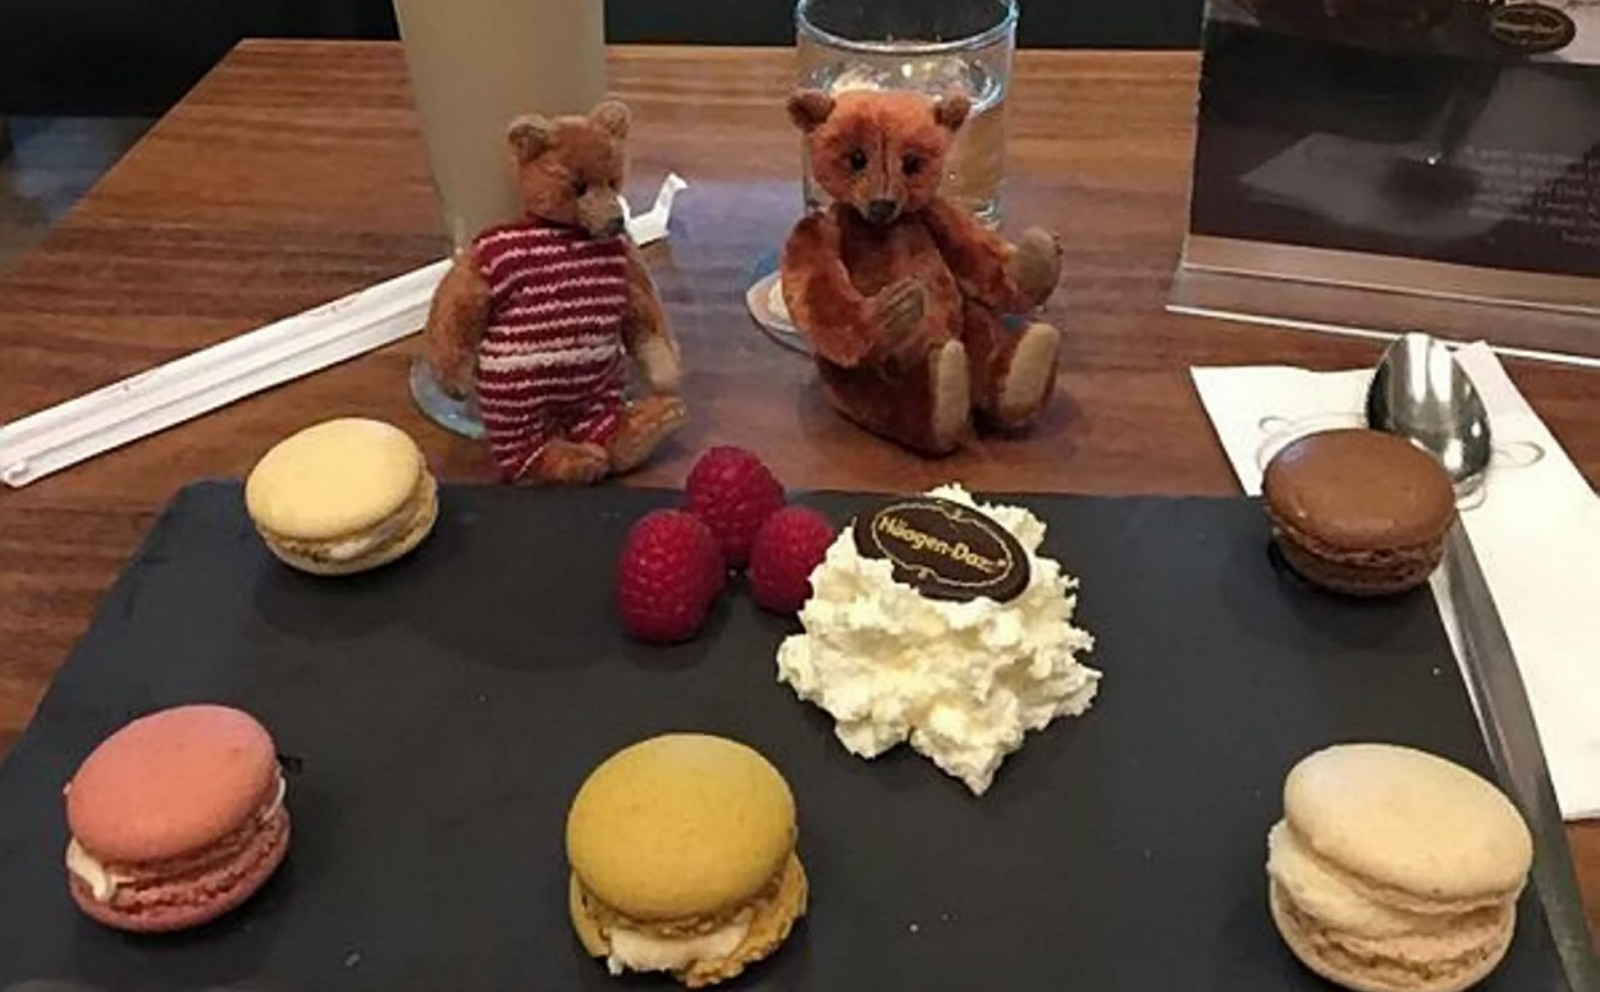 Lawyer heartbroken after losing two teddy bears while taking them out for dinner